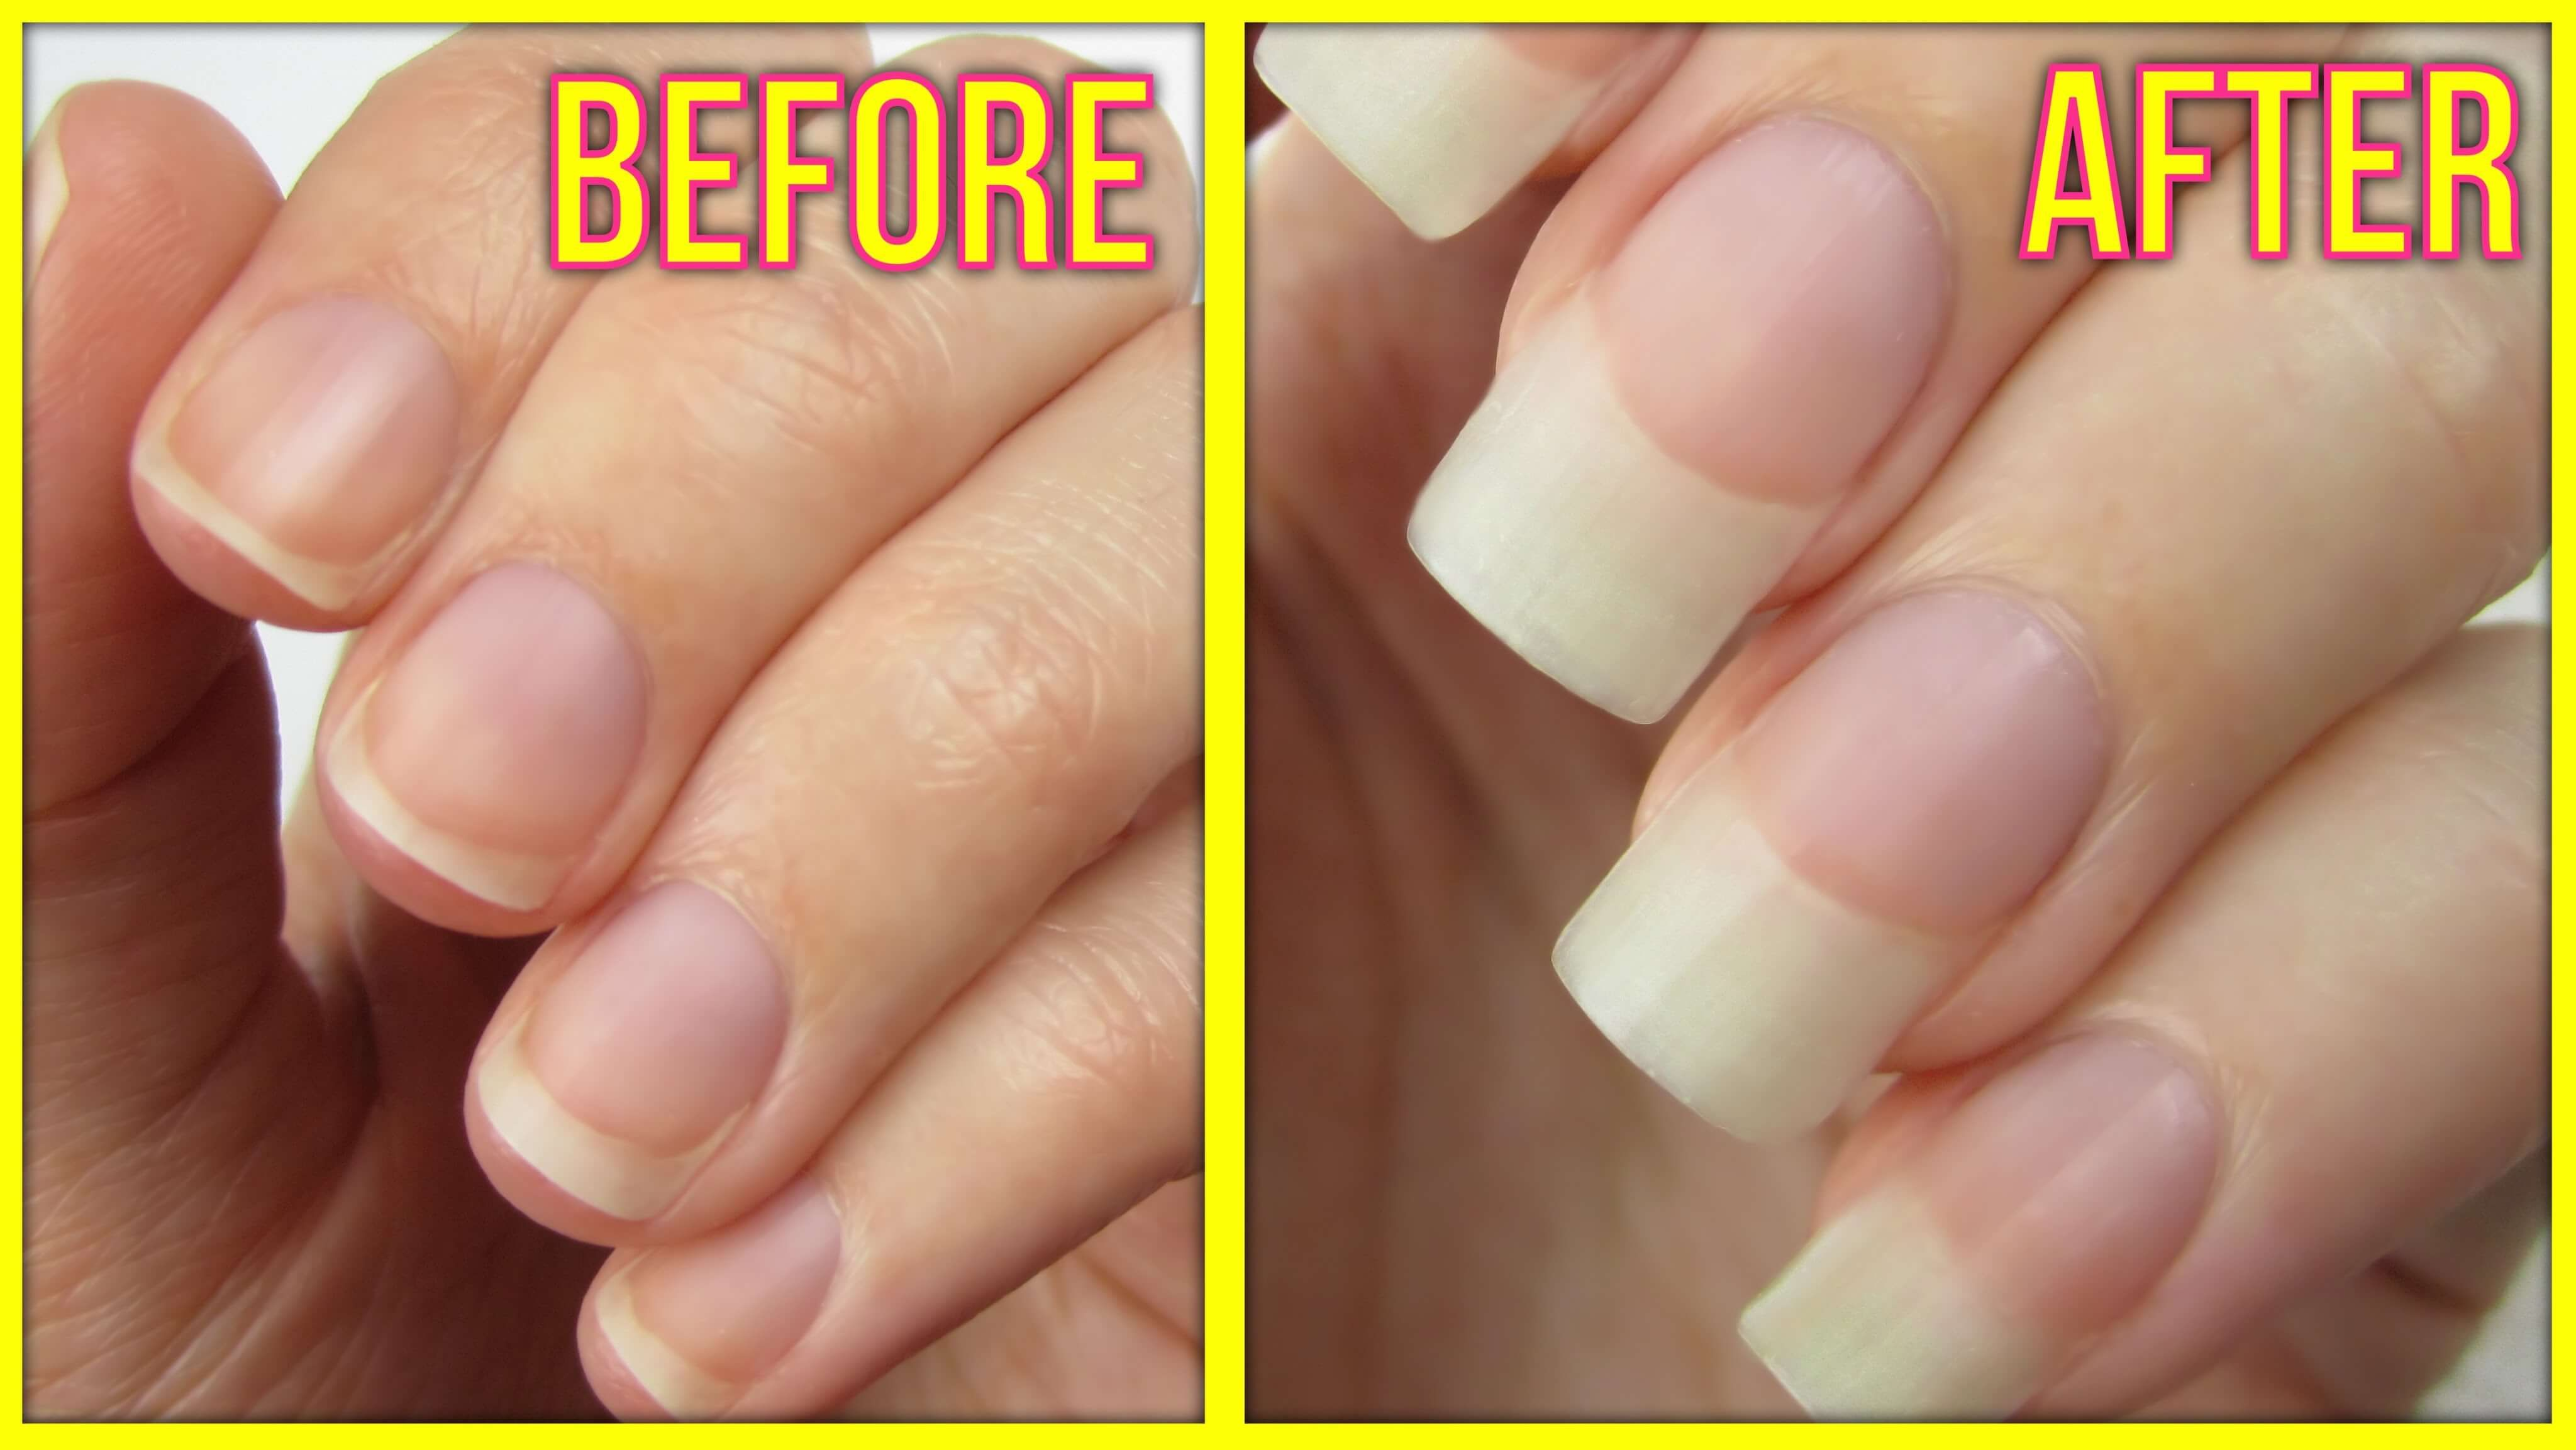 before and after nail growth | Health and Beauty Aids | Pinterest ...